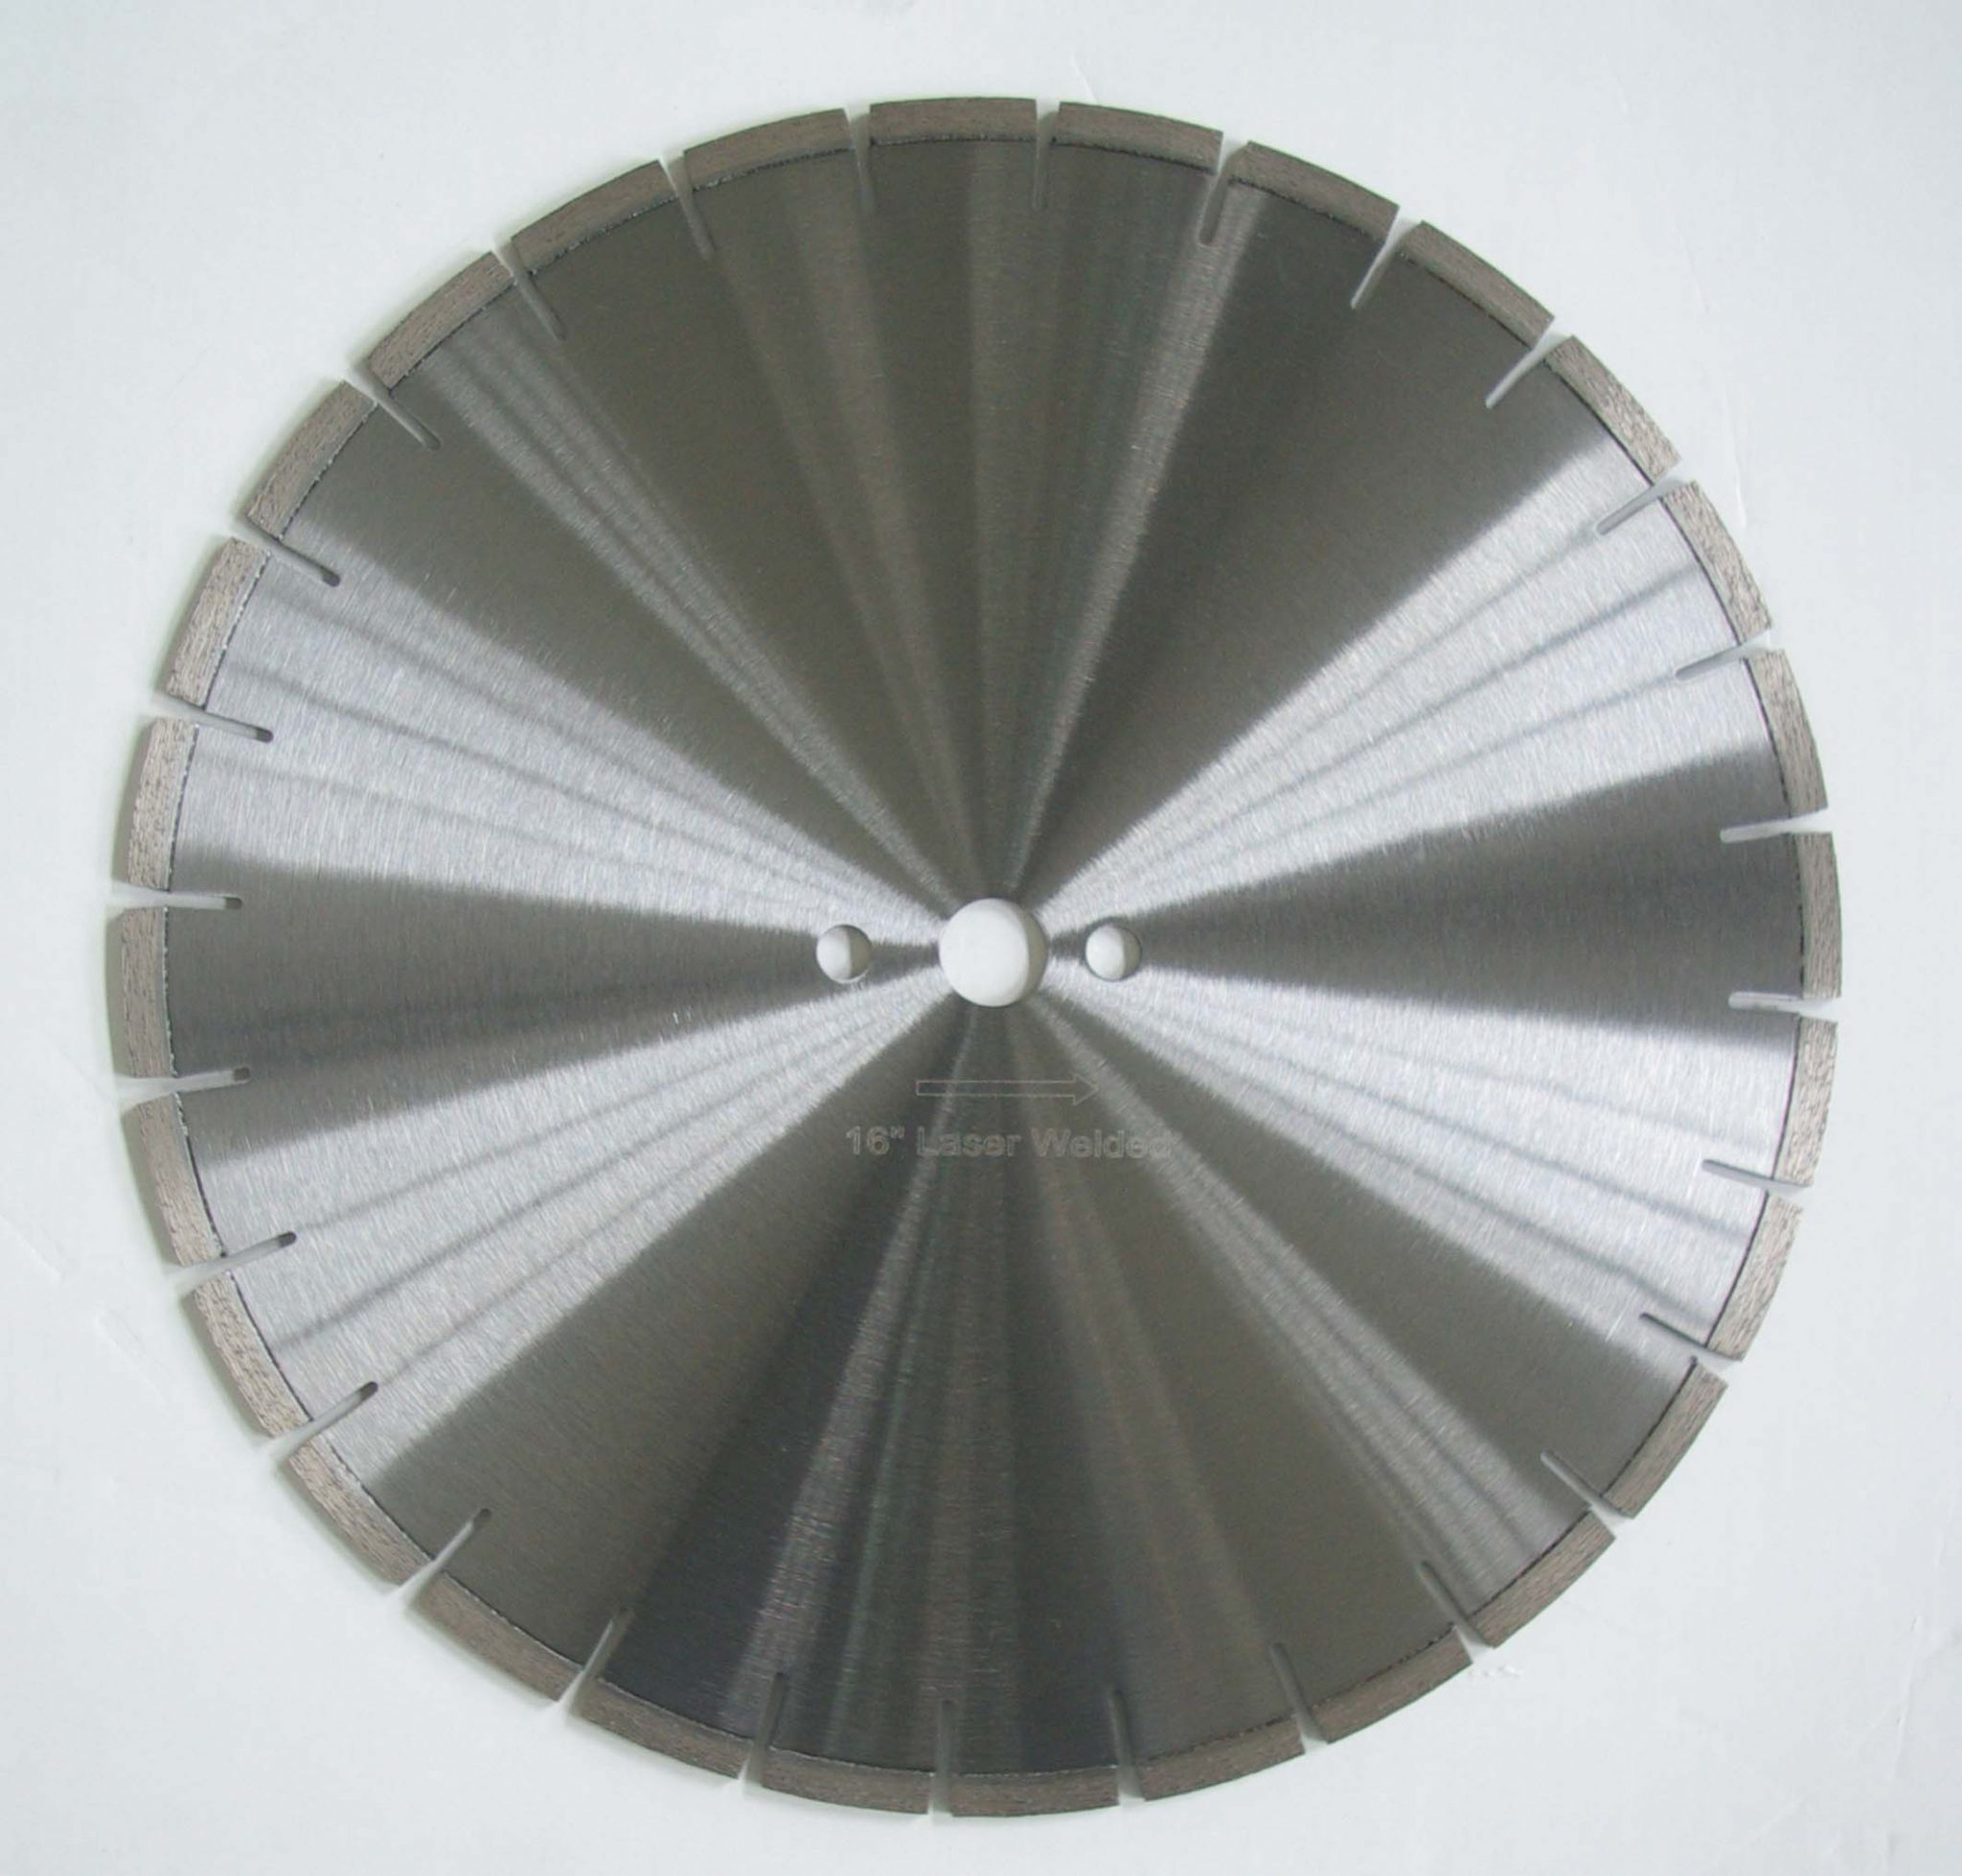 400mm silent saw blade for marble and granite